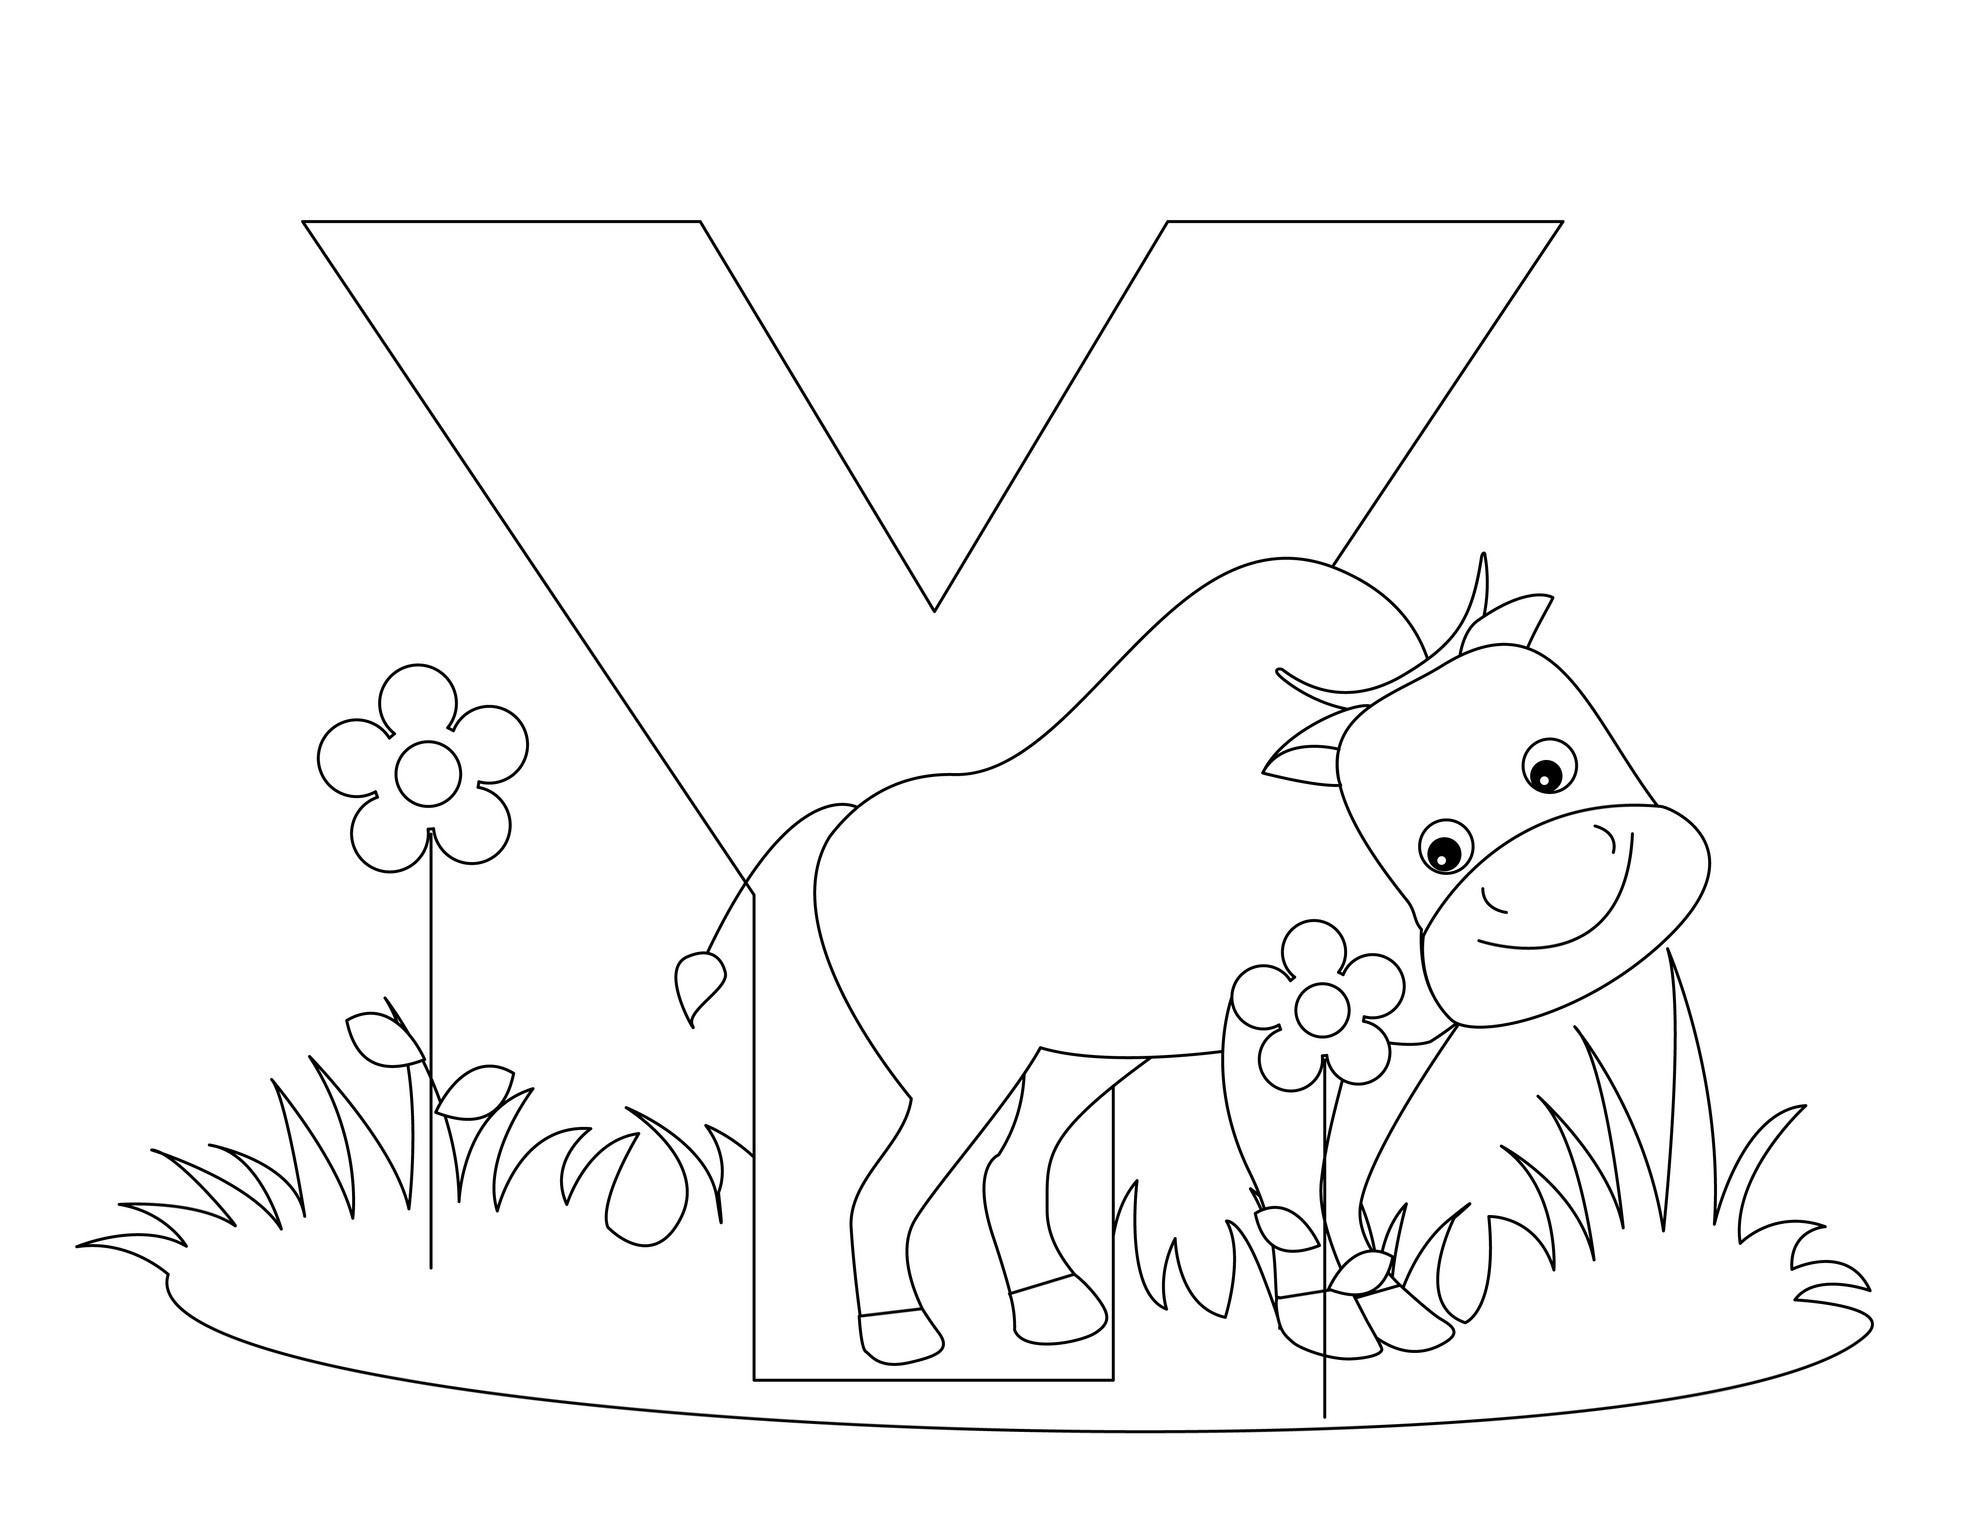 alfabet coloring pages - photo#34